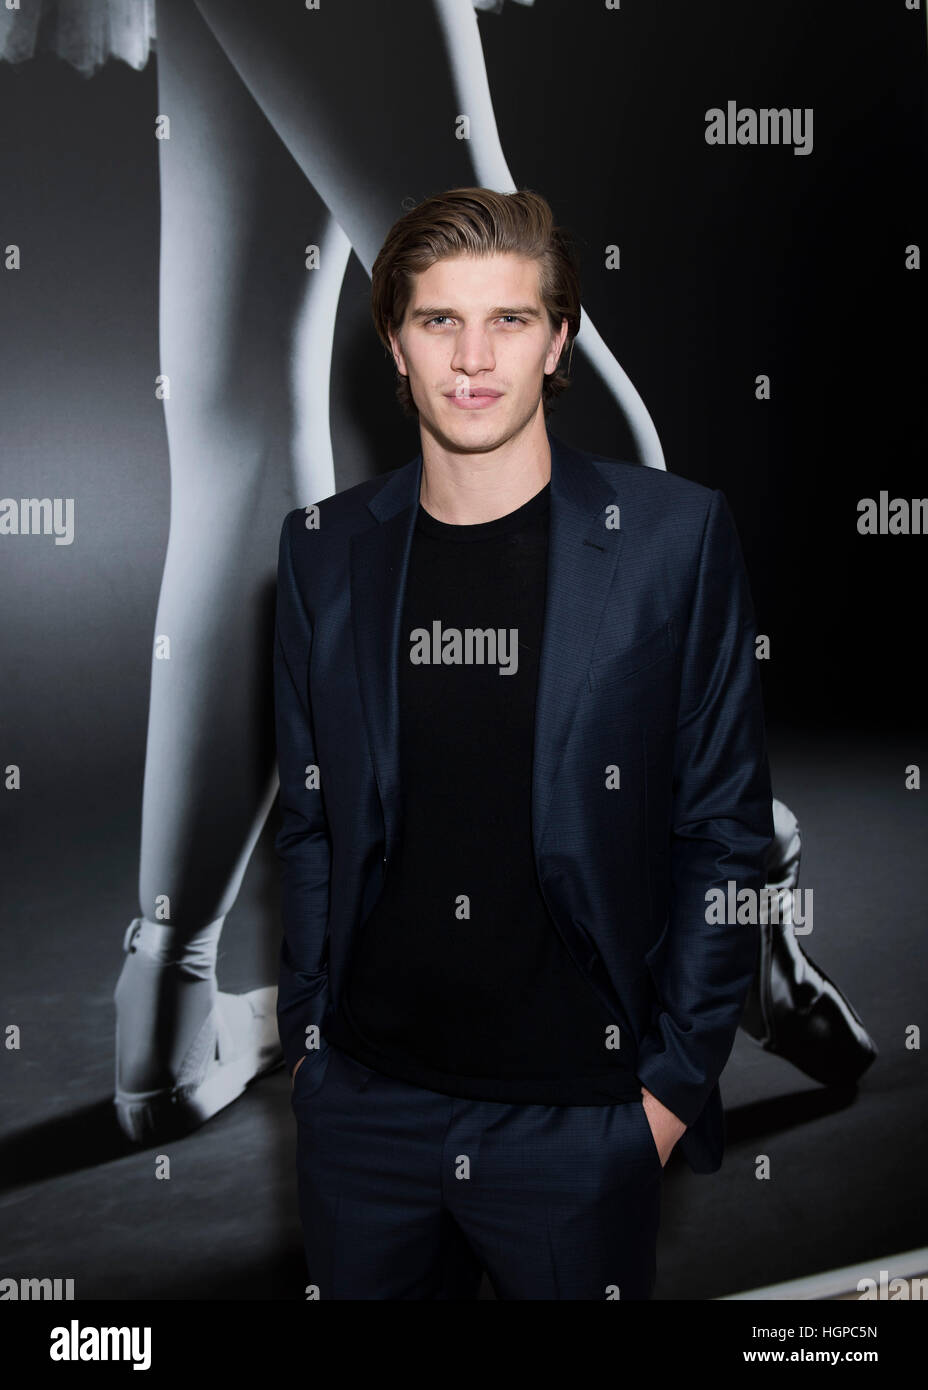 0369ac98d Toby Huntington-Whiteley attending the opening night party of English  National Ballet's Giselle at St